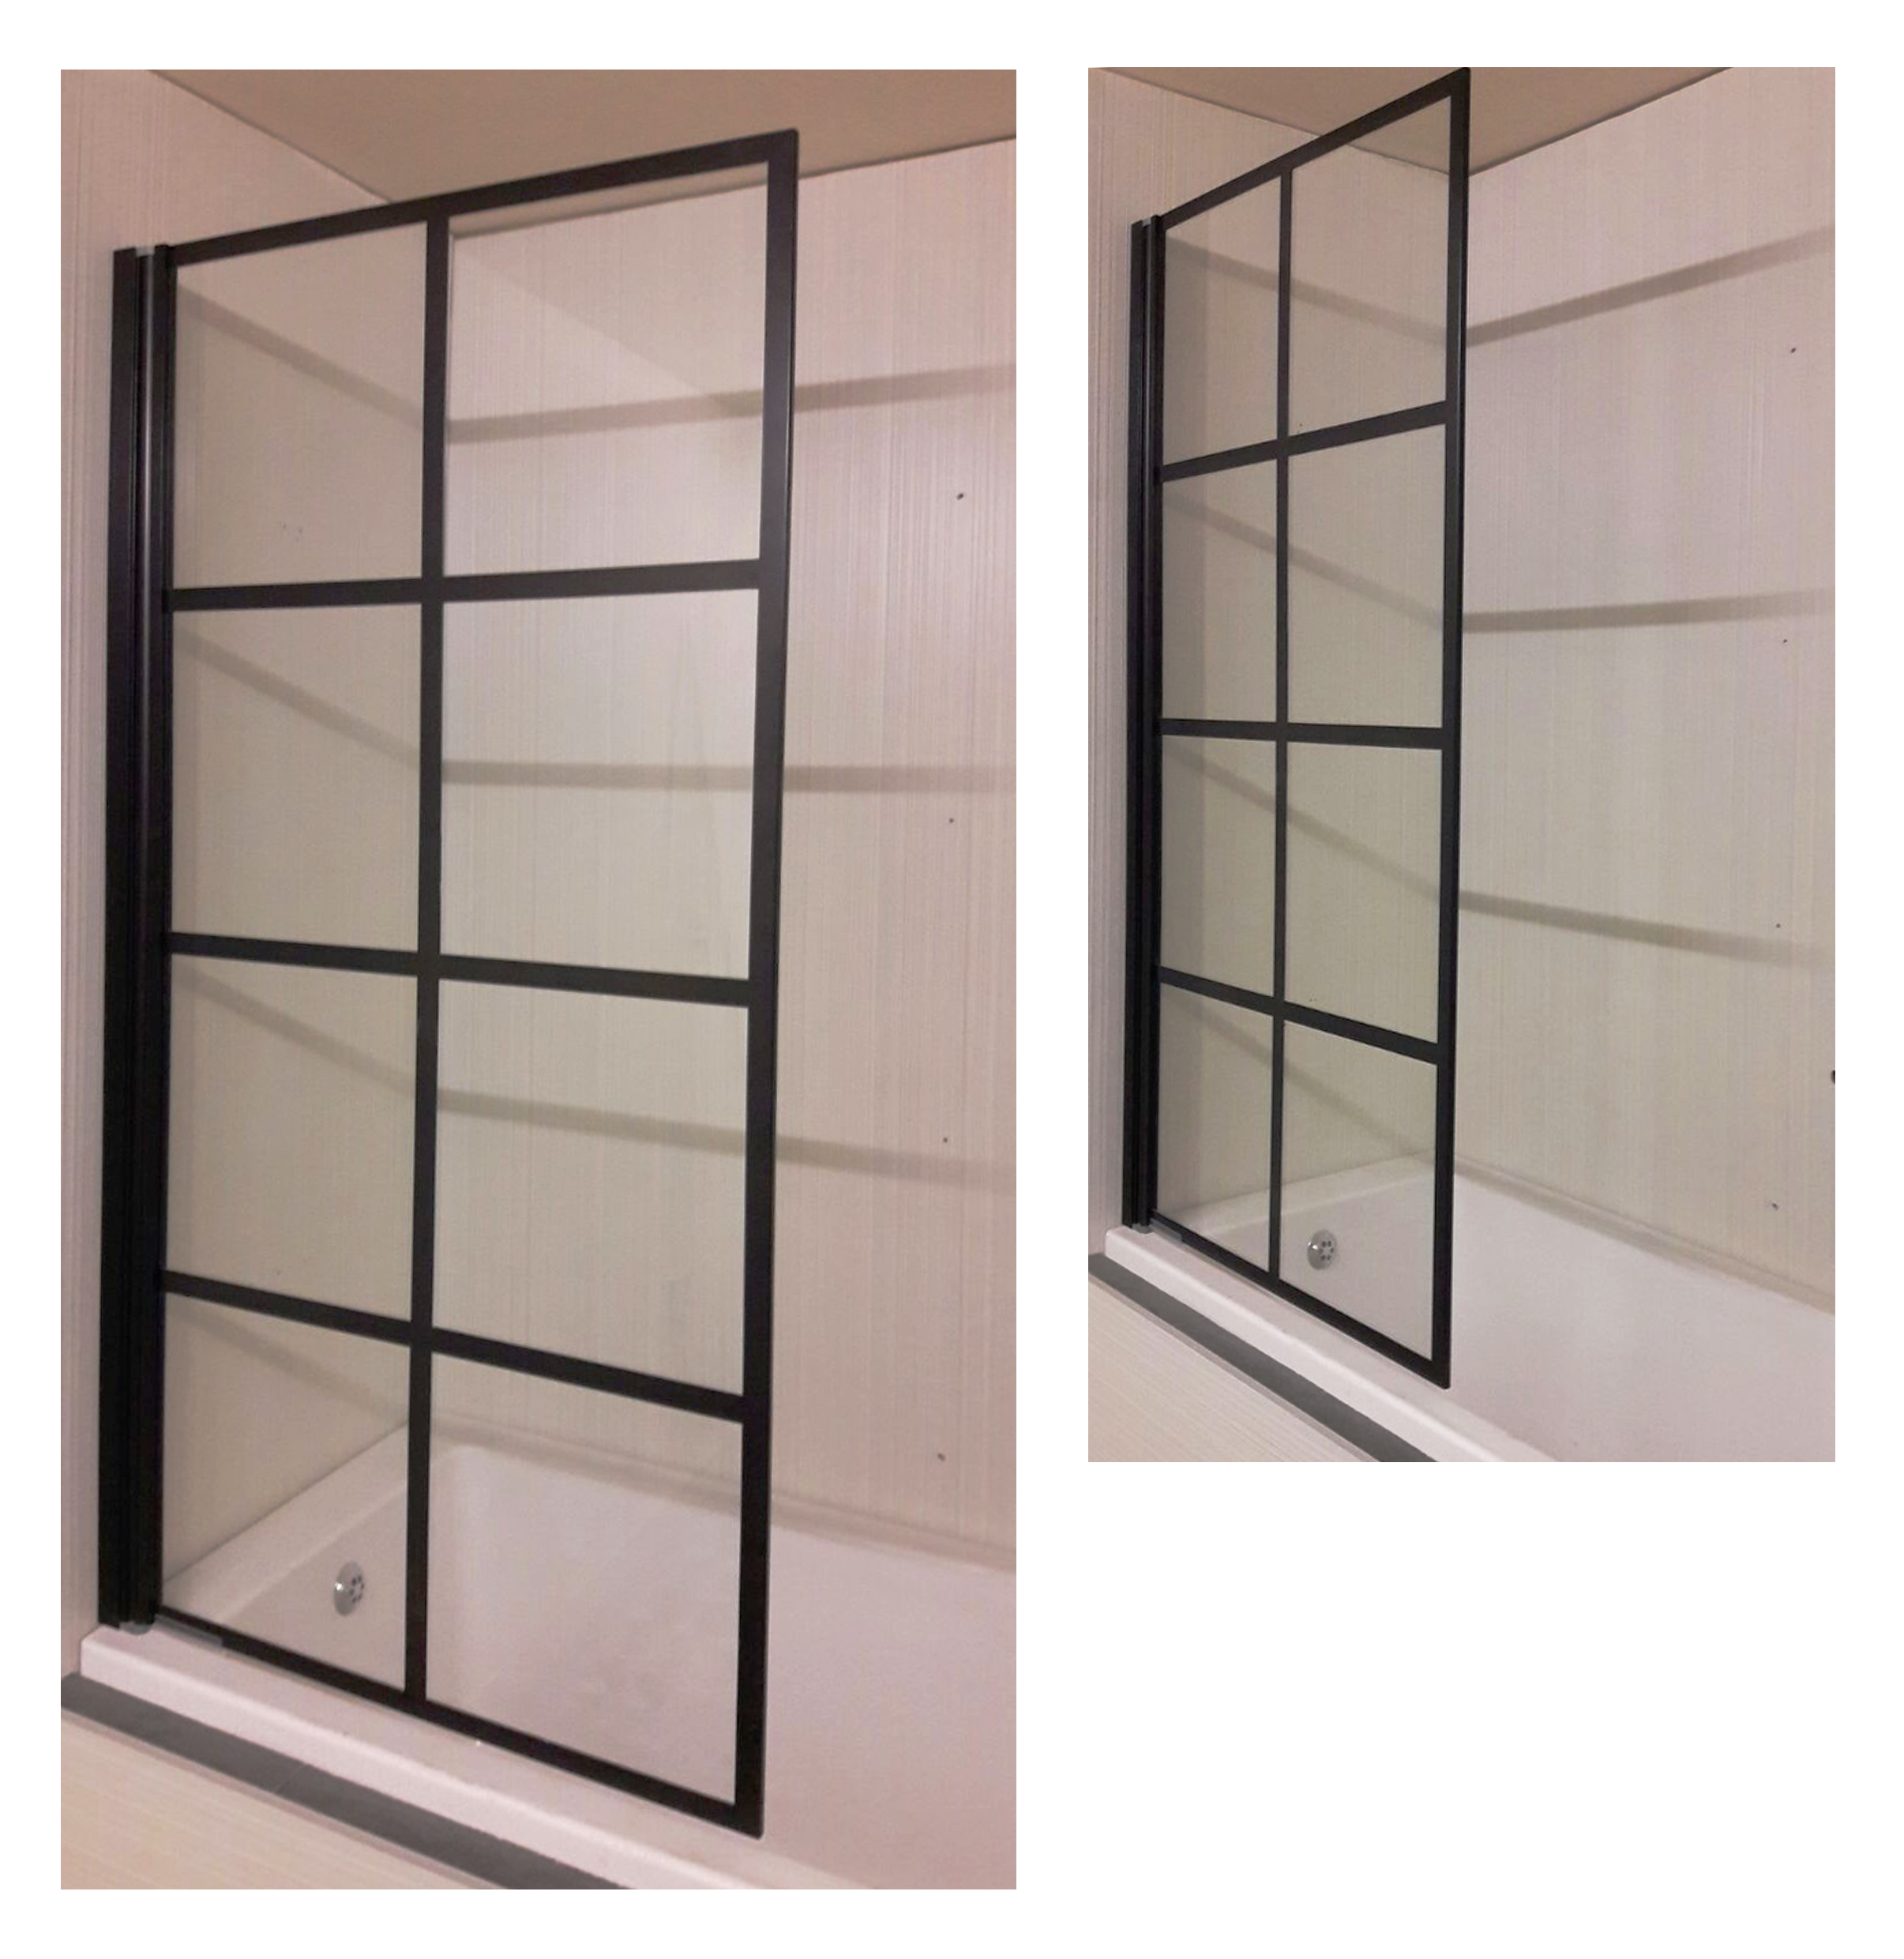 Thin Black Frames On This Shower Enclosure Offer A Stylish Alternative To  Plain Glass. #black #framed #showers